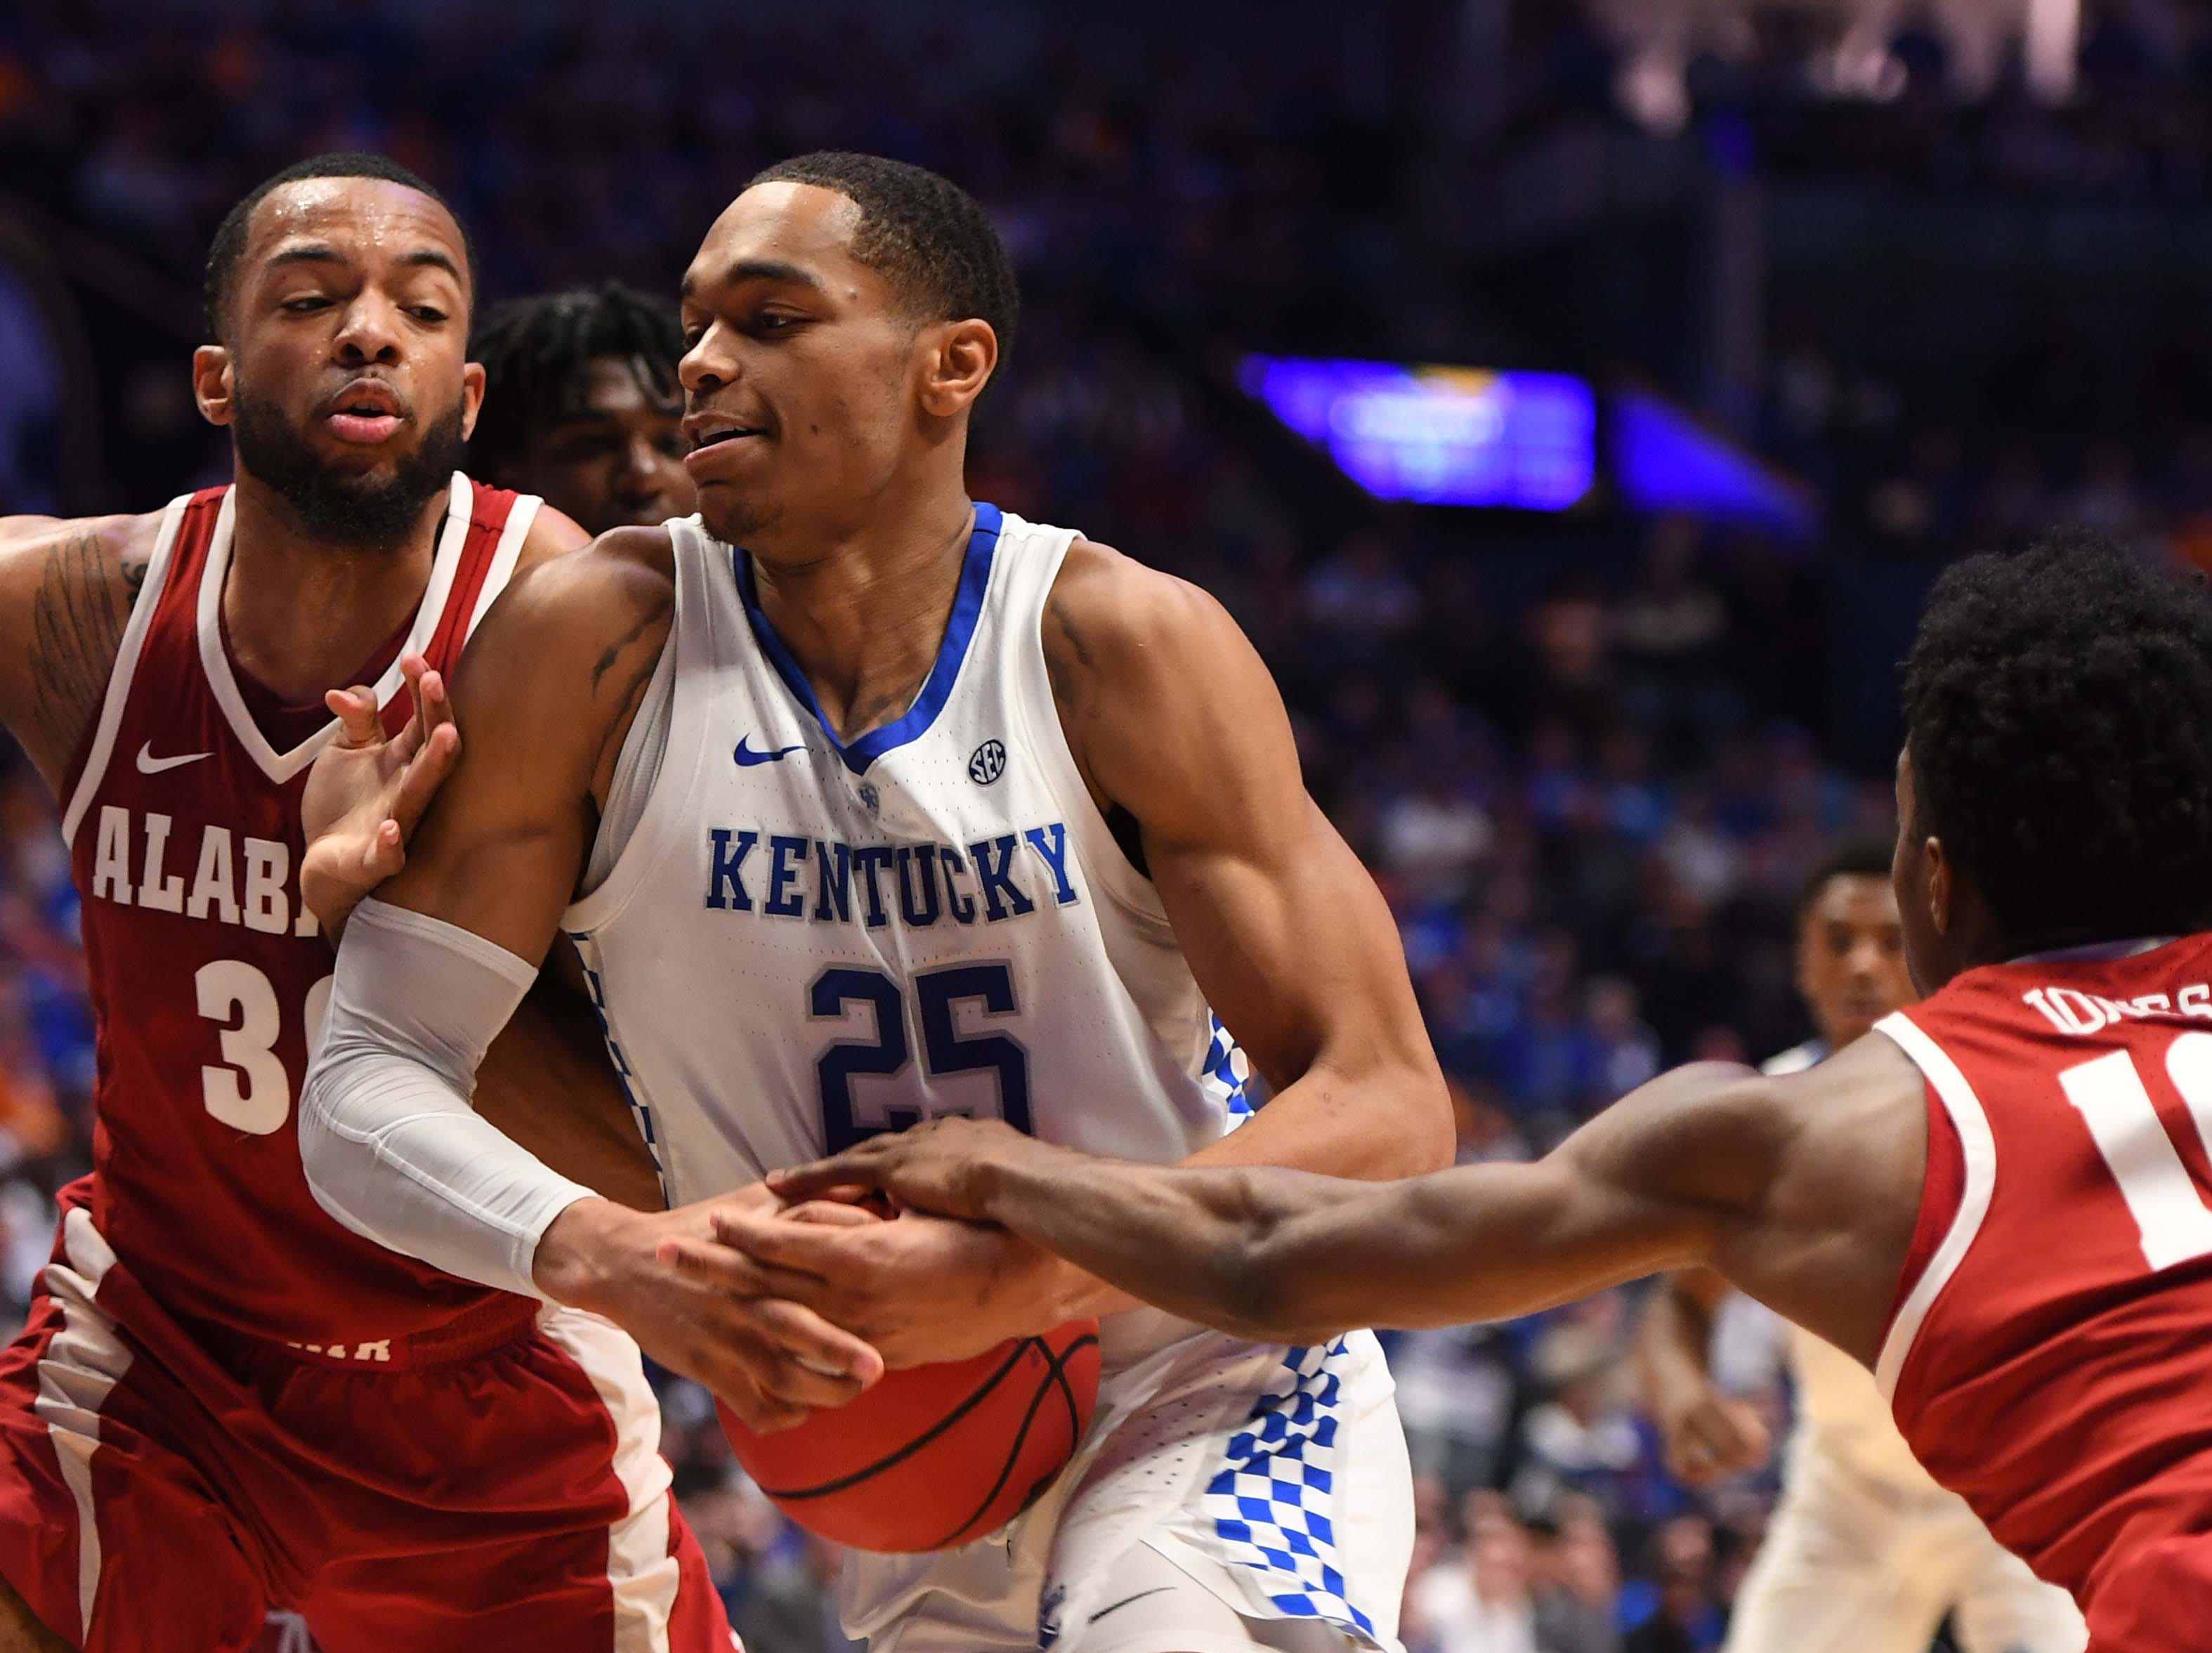 Mar 15, 2019; Nashville, TN, USA; Kentucky Wildcats forward PJ Washington (25) drives to the basket against the Alabama Crimson Tide during the first half of the SEC conference tournament at Bridgestone Arena. Mandatory Credit: Christopher Hanewinckel-USA TODAY Sports